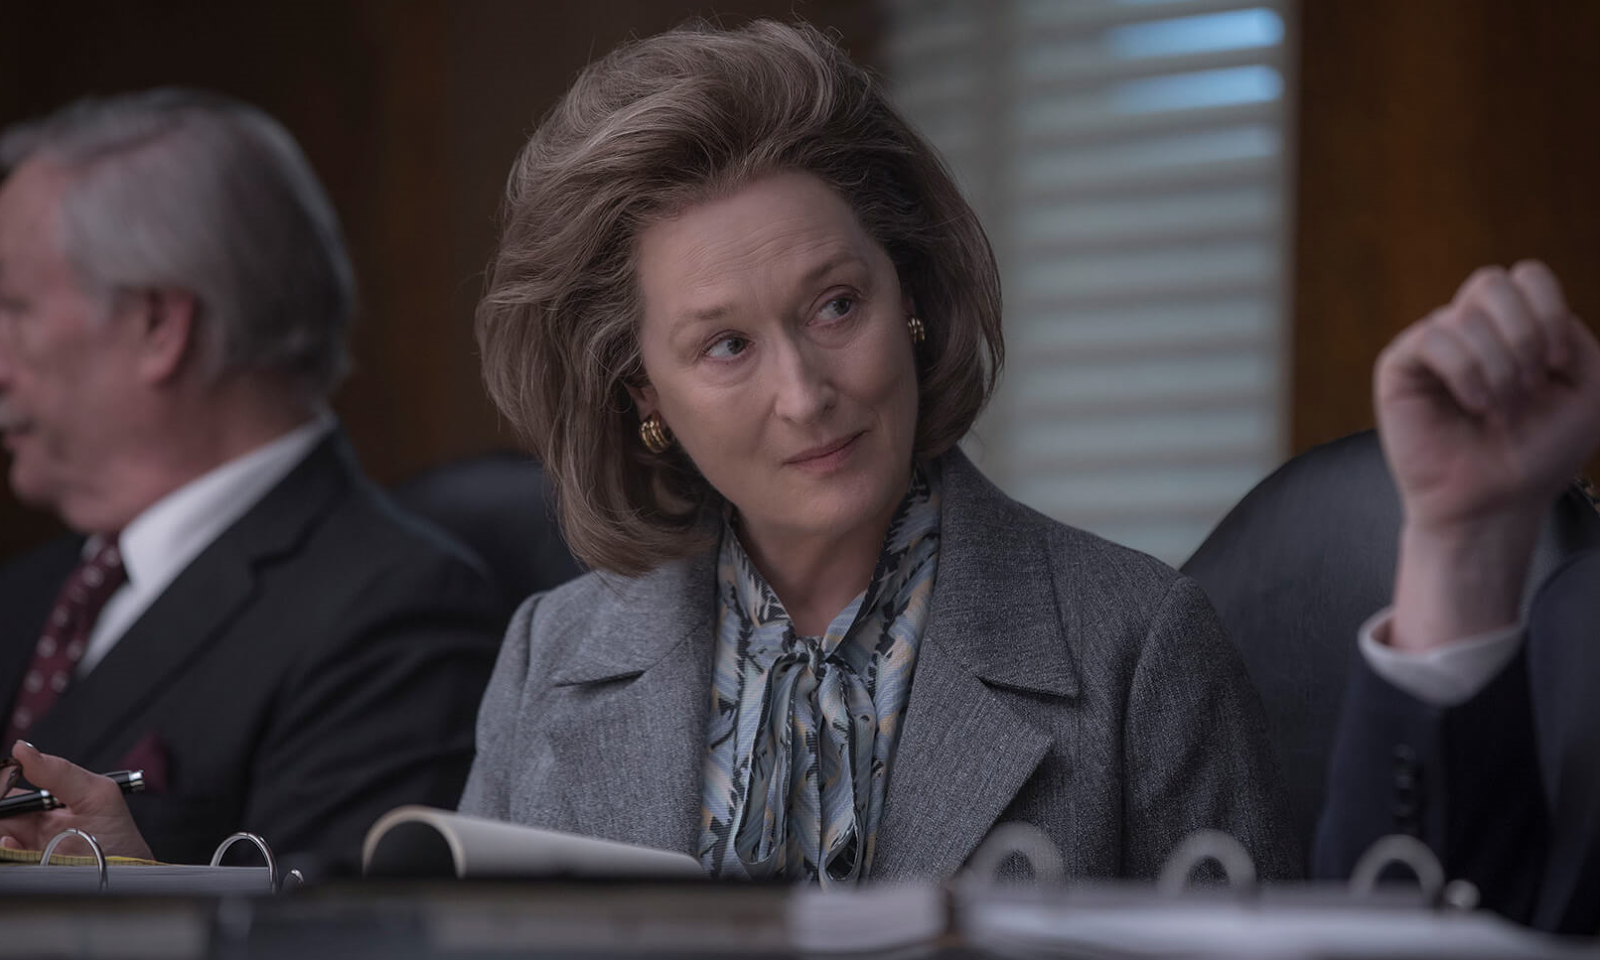 Meryl Streep in The Post movie